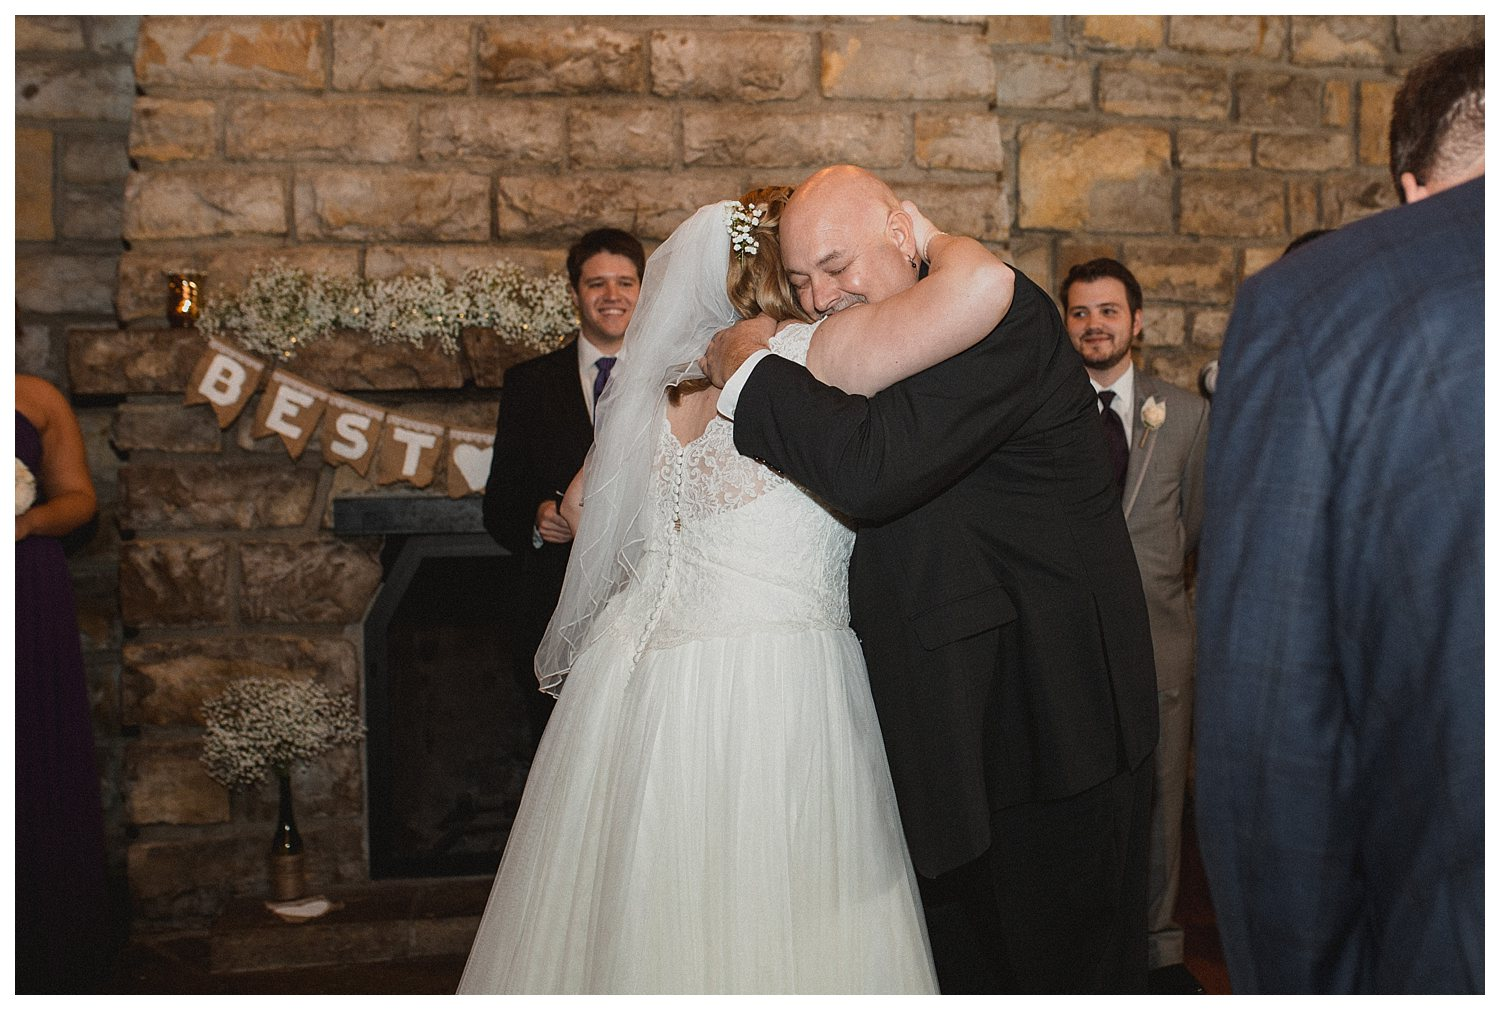 Kelsey_Diane_Photography_Loose_Mansion_Wedding_Photography_Kansas_City_Victor_Lyndsay_0377.jpg